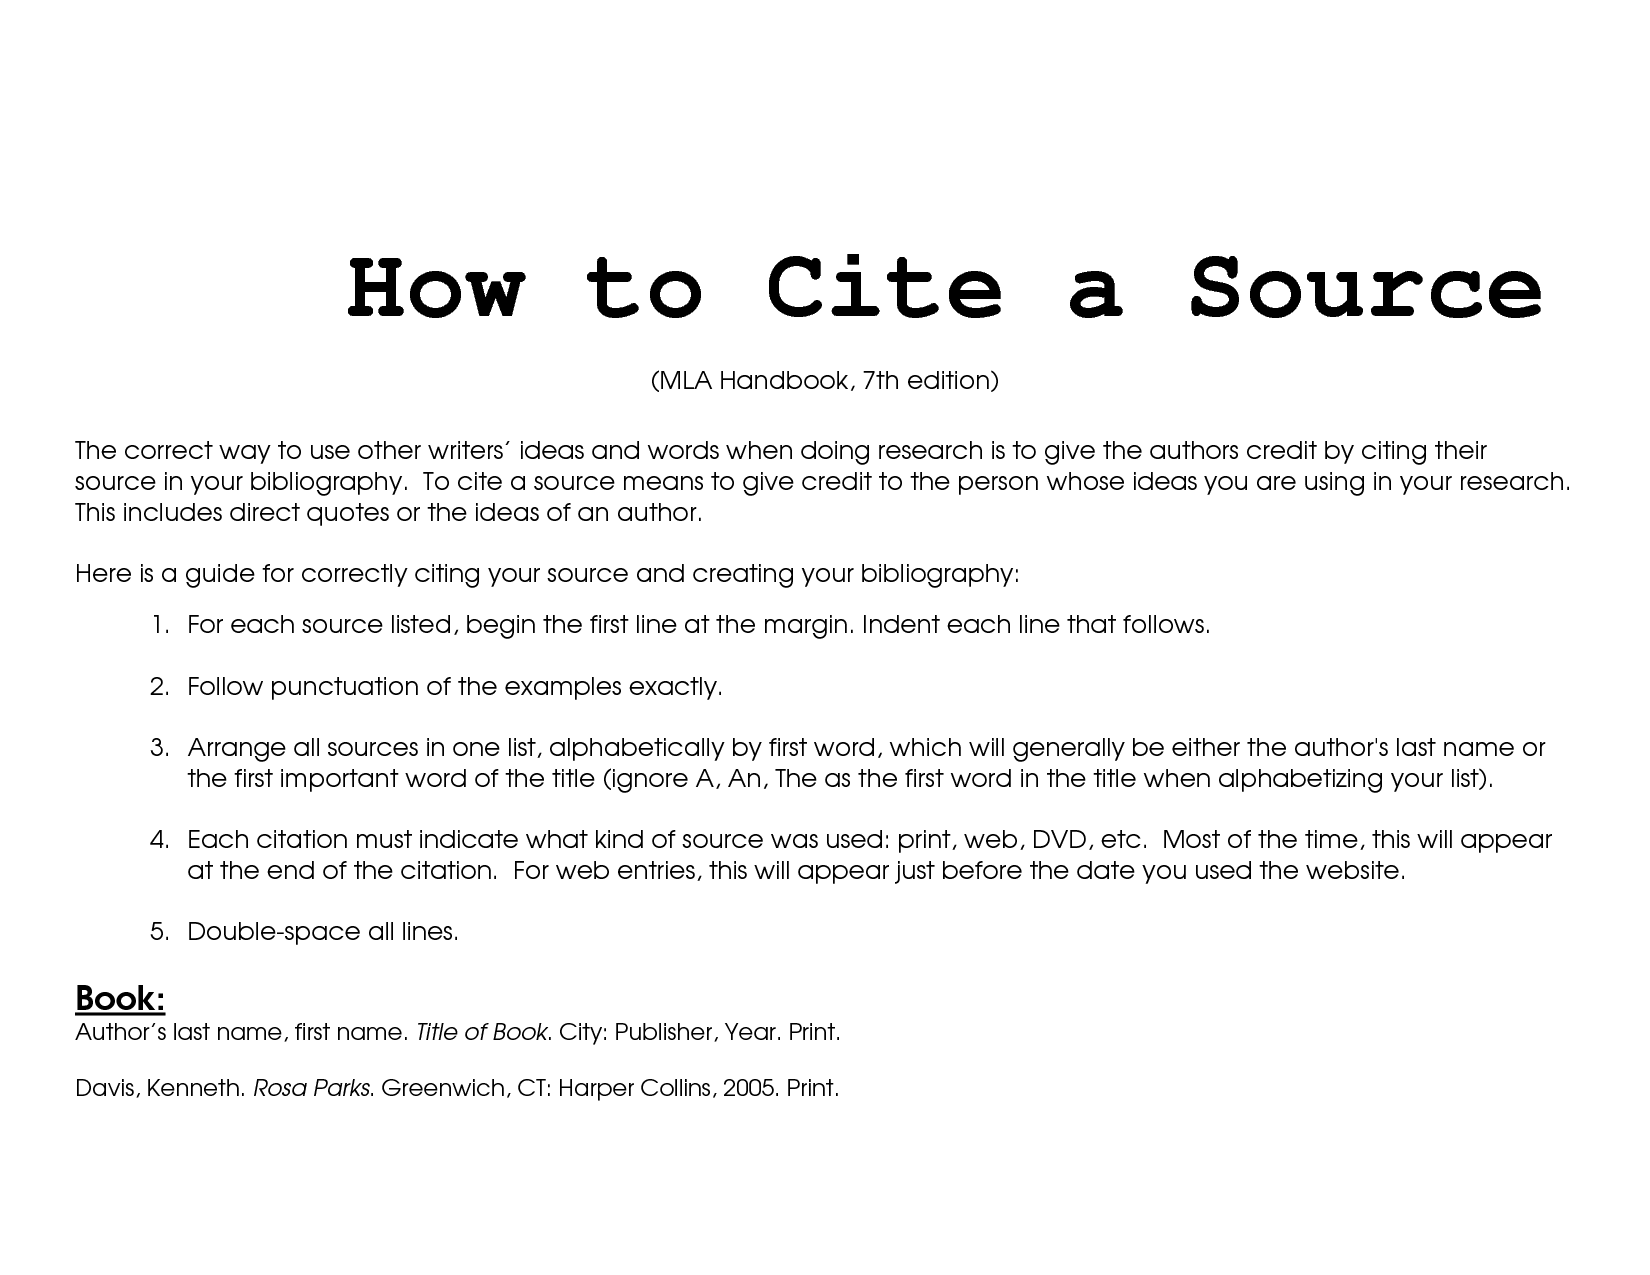 When to cite sources for college application essays